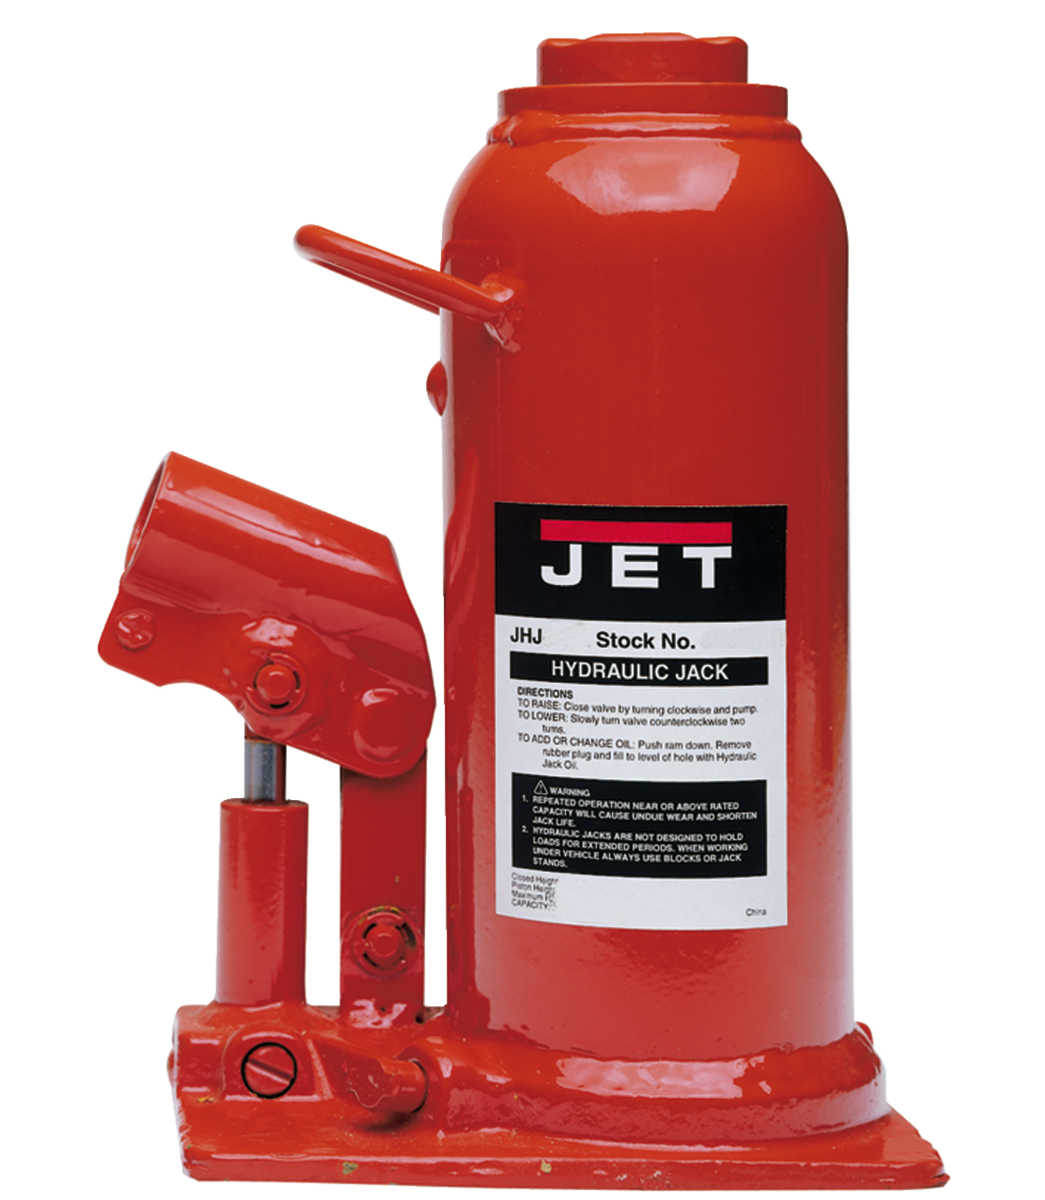 JHJ-3, 3-Ton Hydraulic Bottle Jack